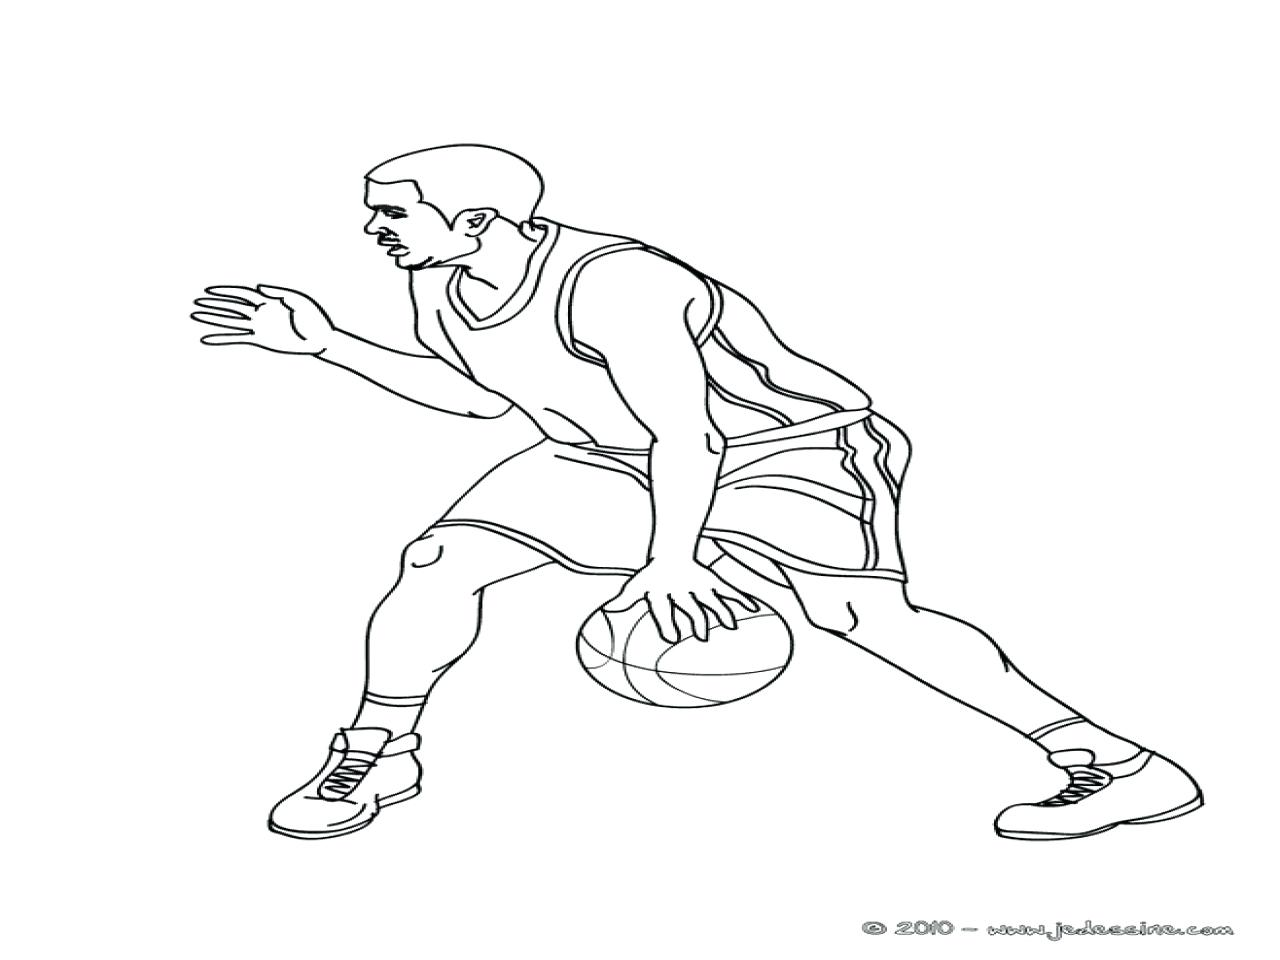 1280x960 Coloring Lebron Coloring Pages Excellent 12 Sheets. Lebron